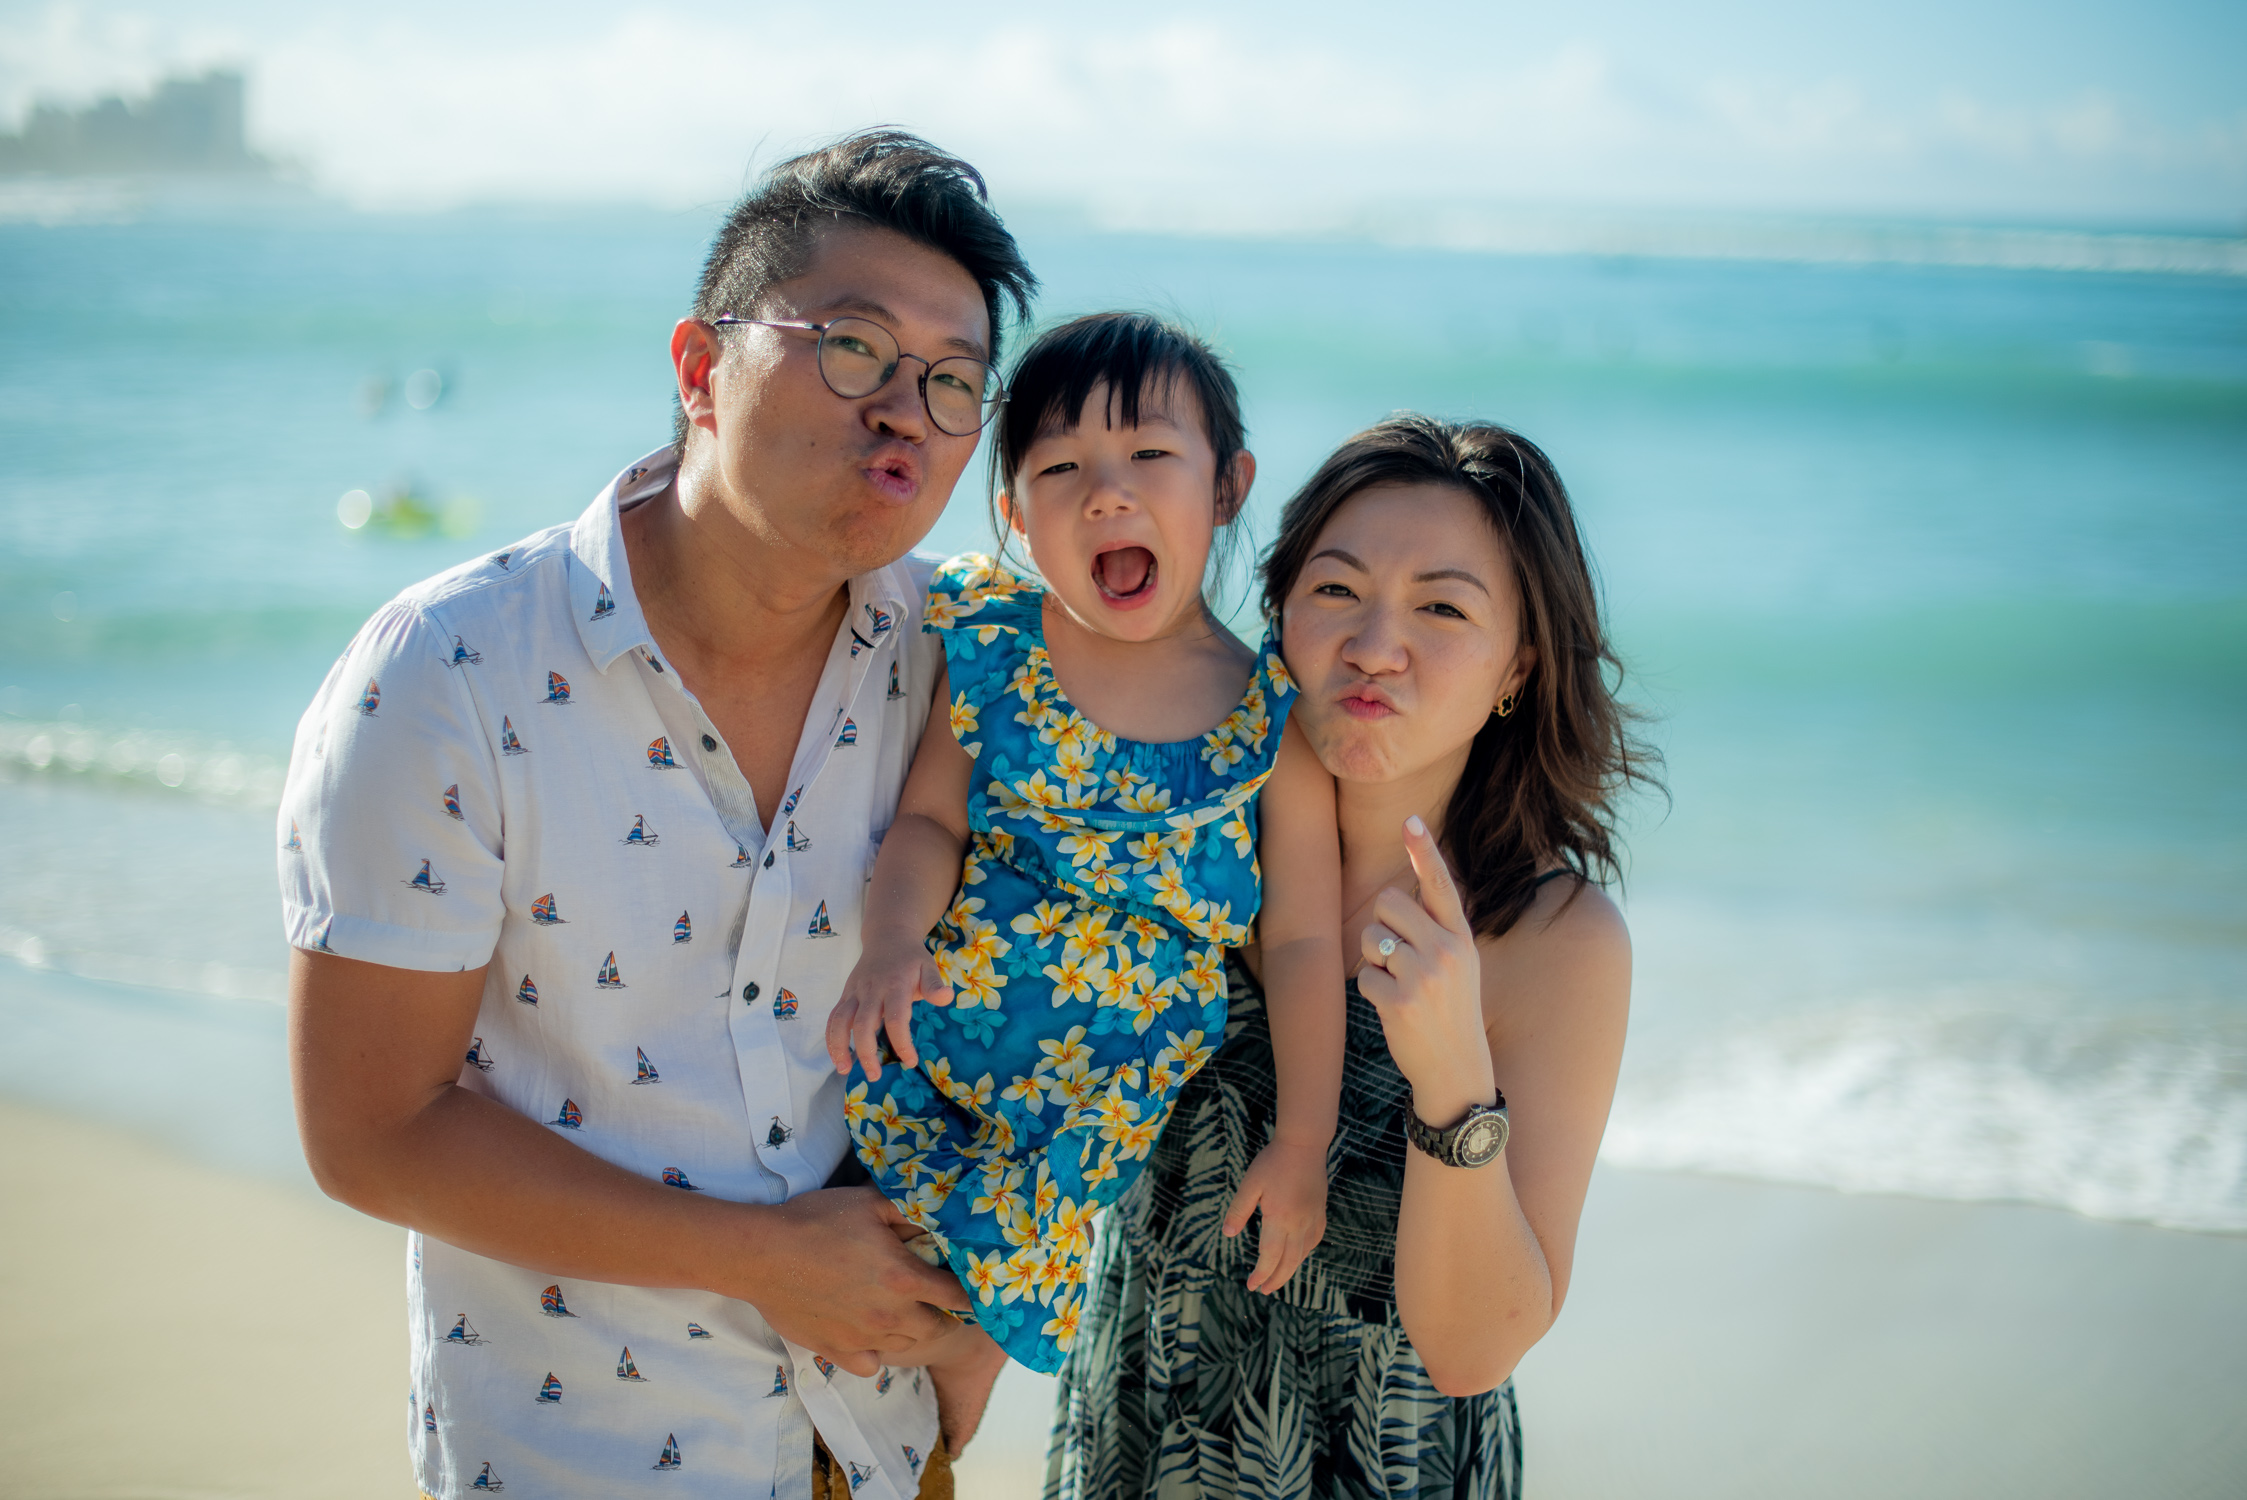 Mom, Dad and daughter making silly faces on Waikiki beach